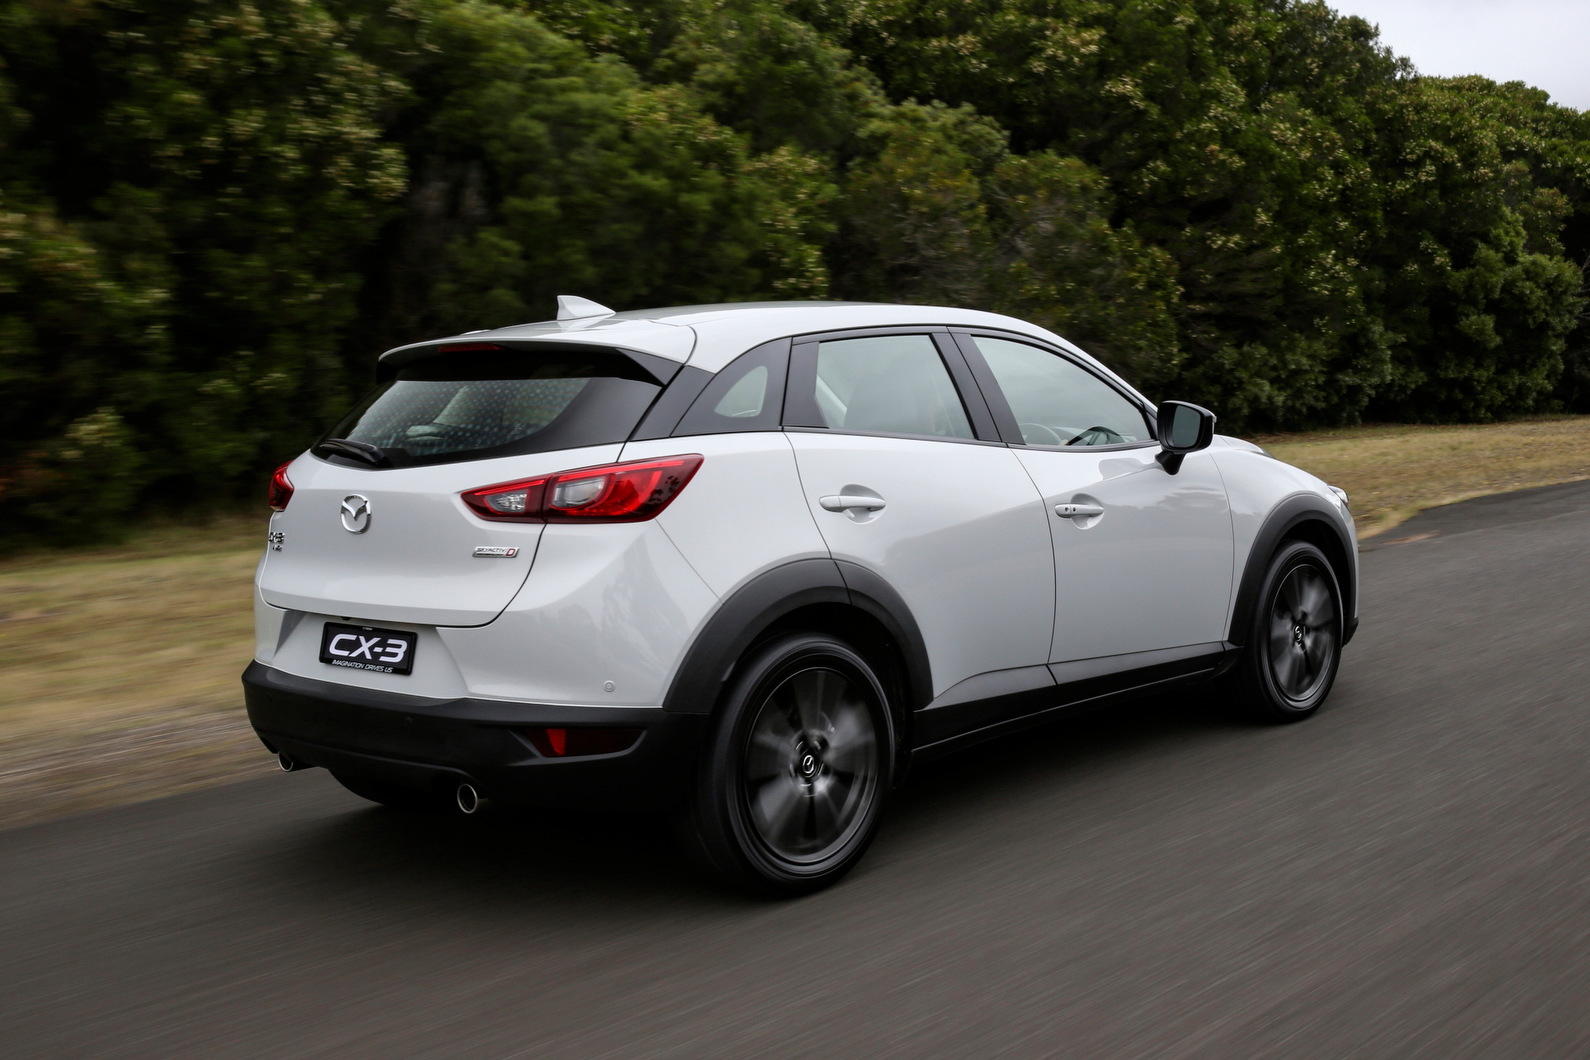 mazda cx3 launch date autos weblog. Black Bedroom Furniture Sets. Home Design Ideas